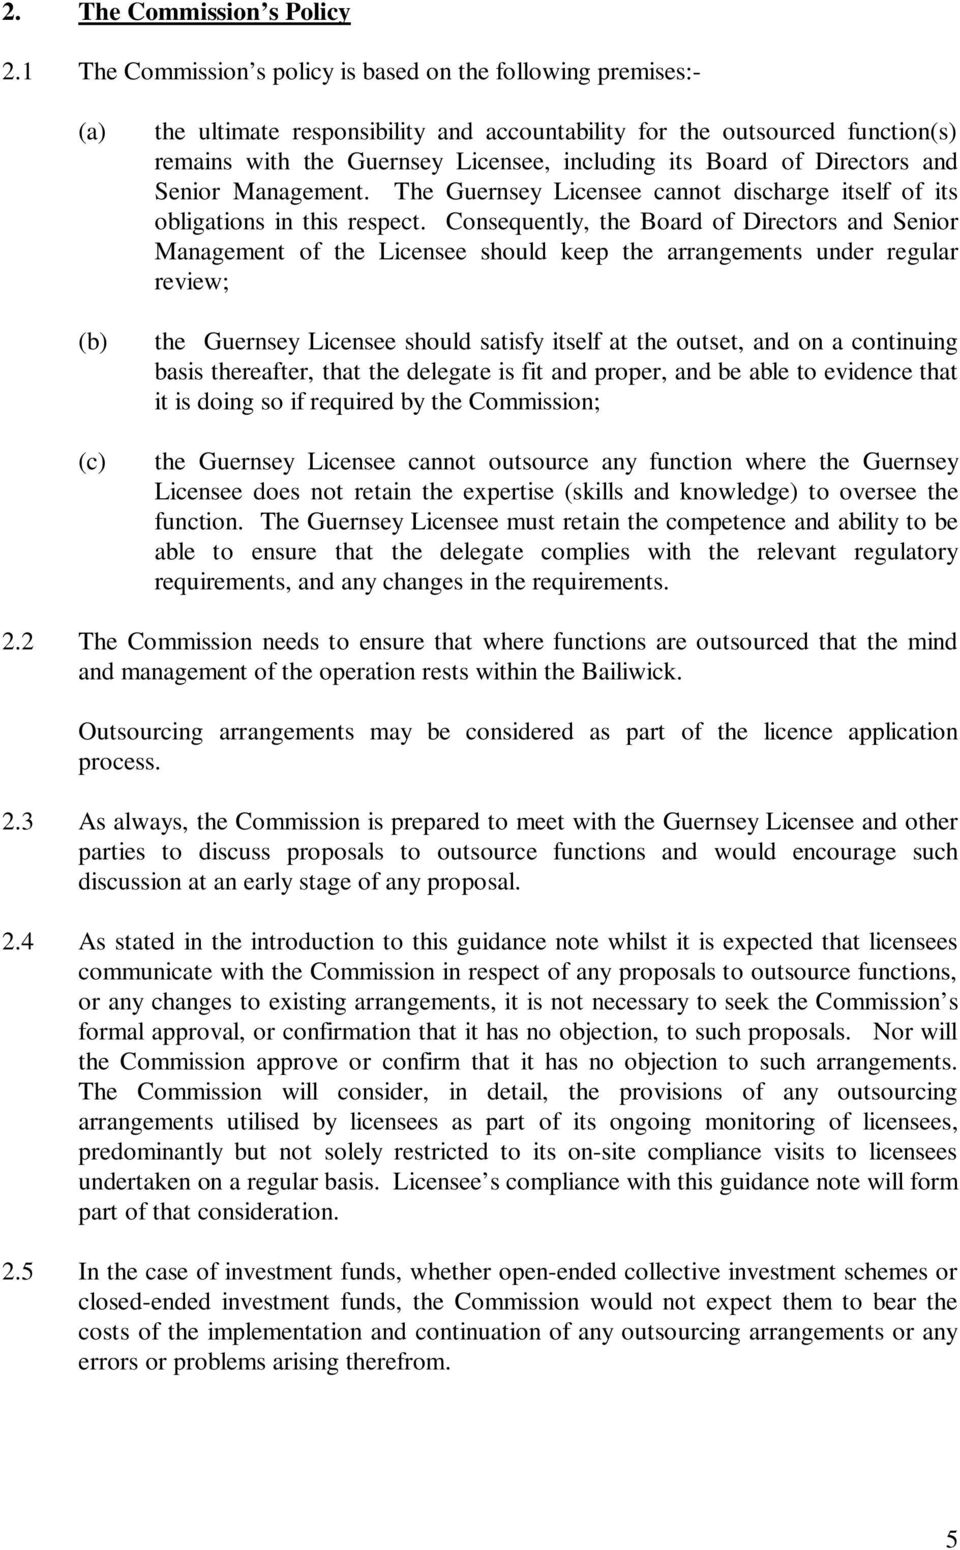 its Board of Directors and Senior Management. The Guernsey Licensee cannot discharge itself of its obligations in this respect.